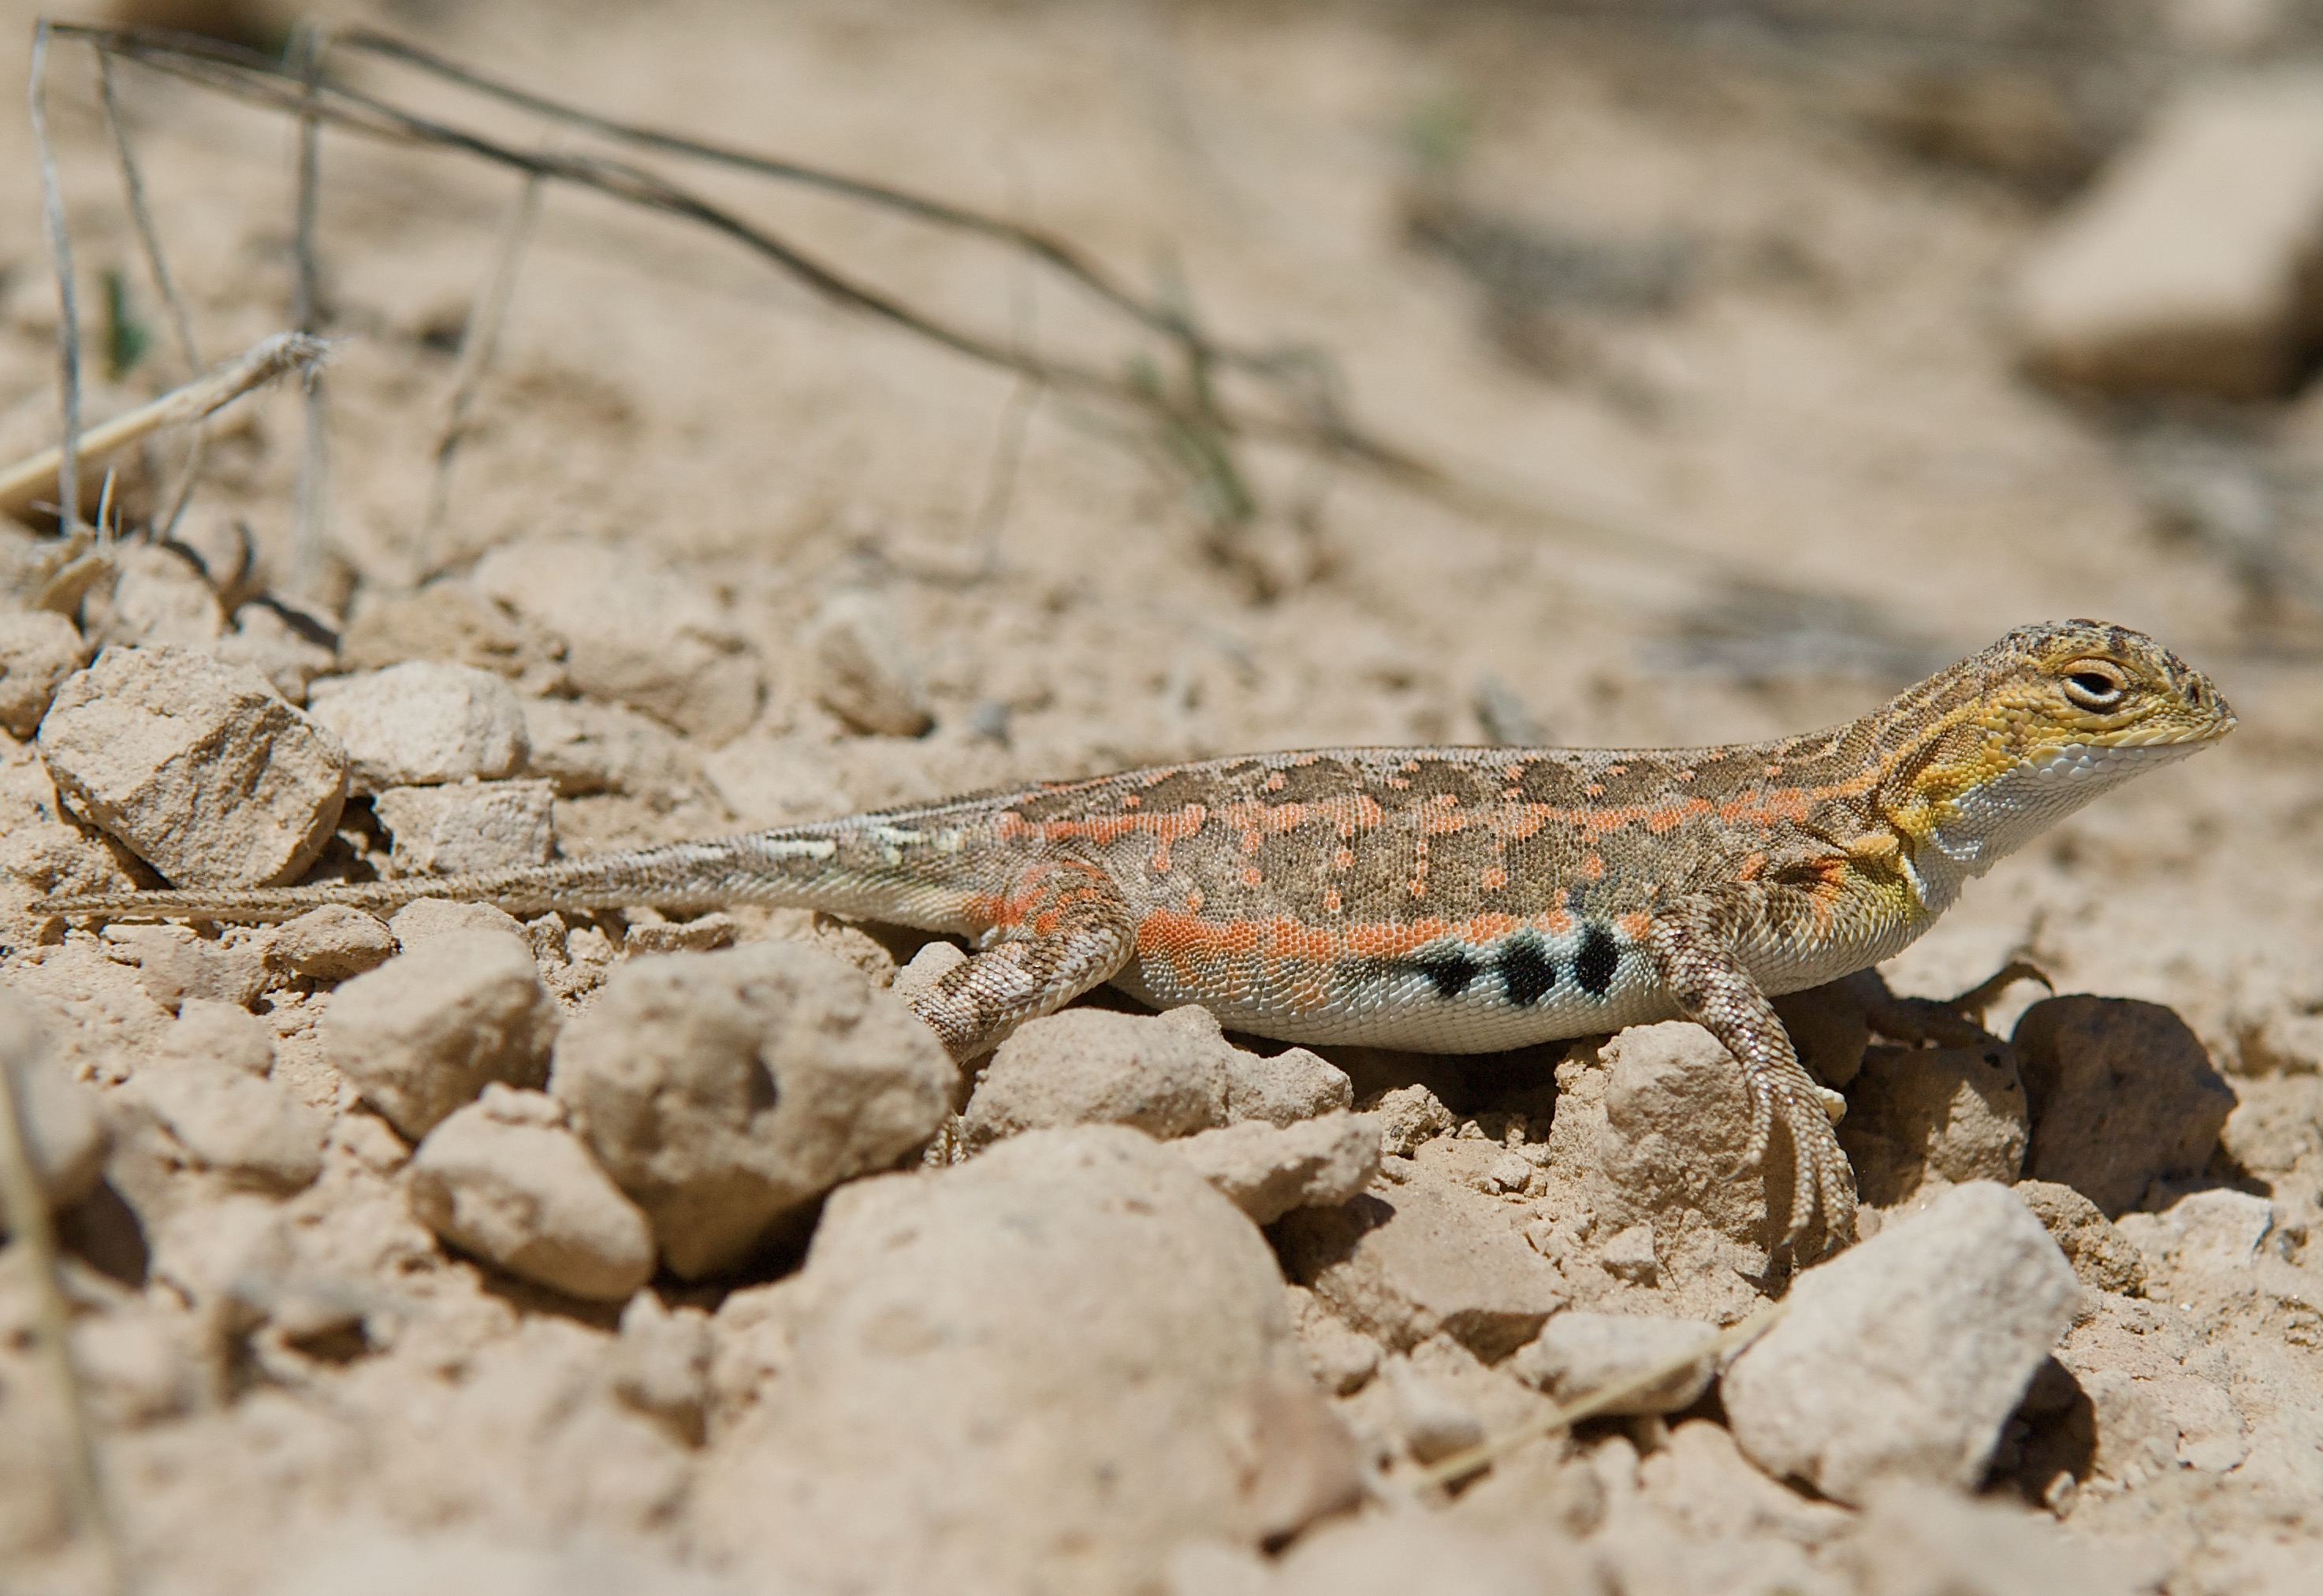 Lesser Earless Lizard ♀